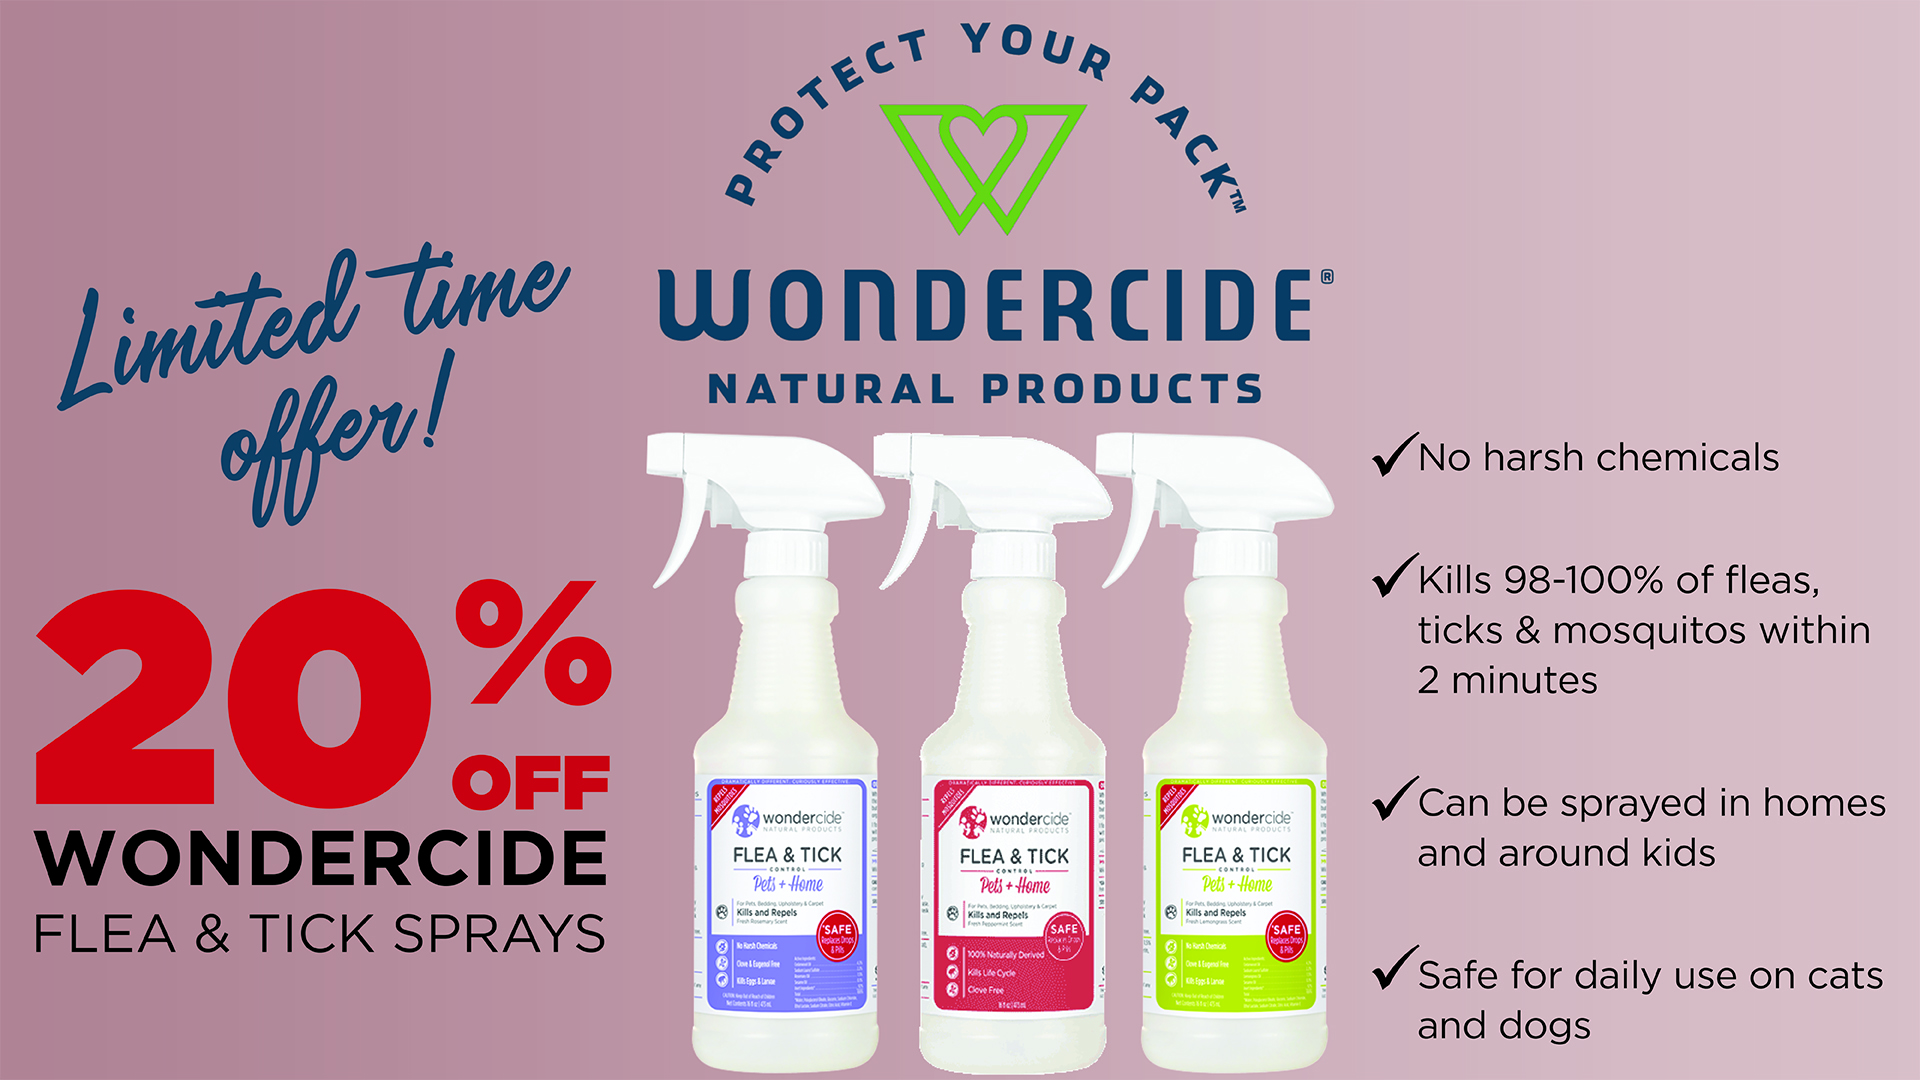 A Natural Solution for Fleas, Ticks & Mosquitoes